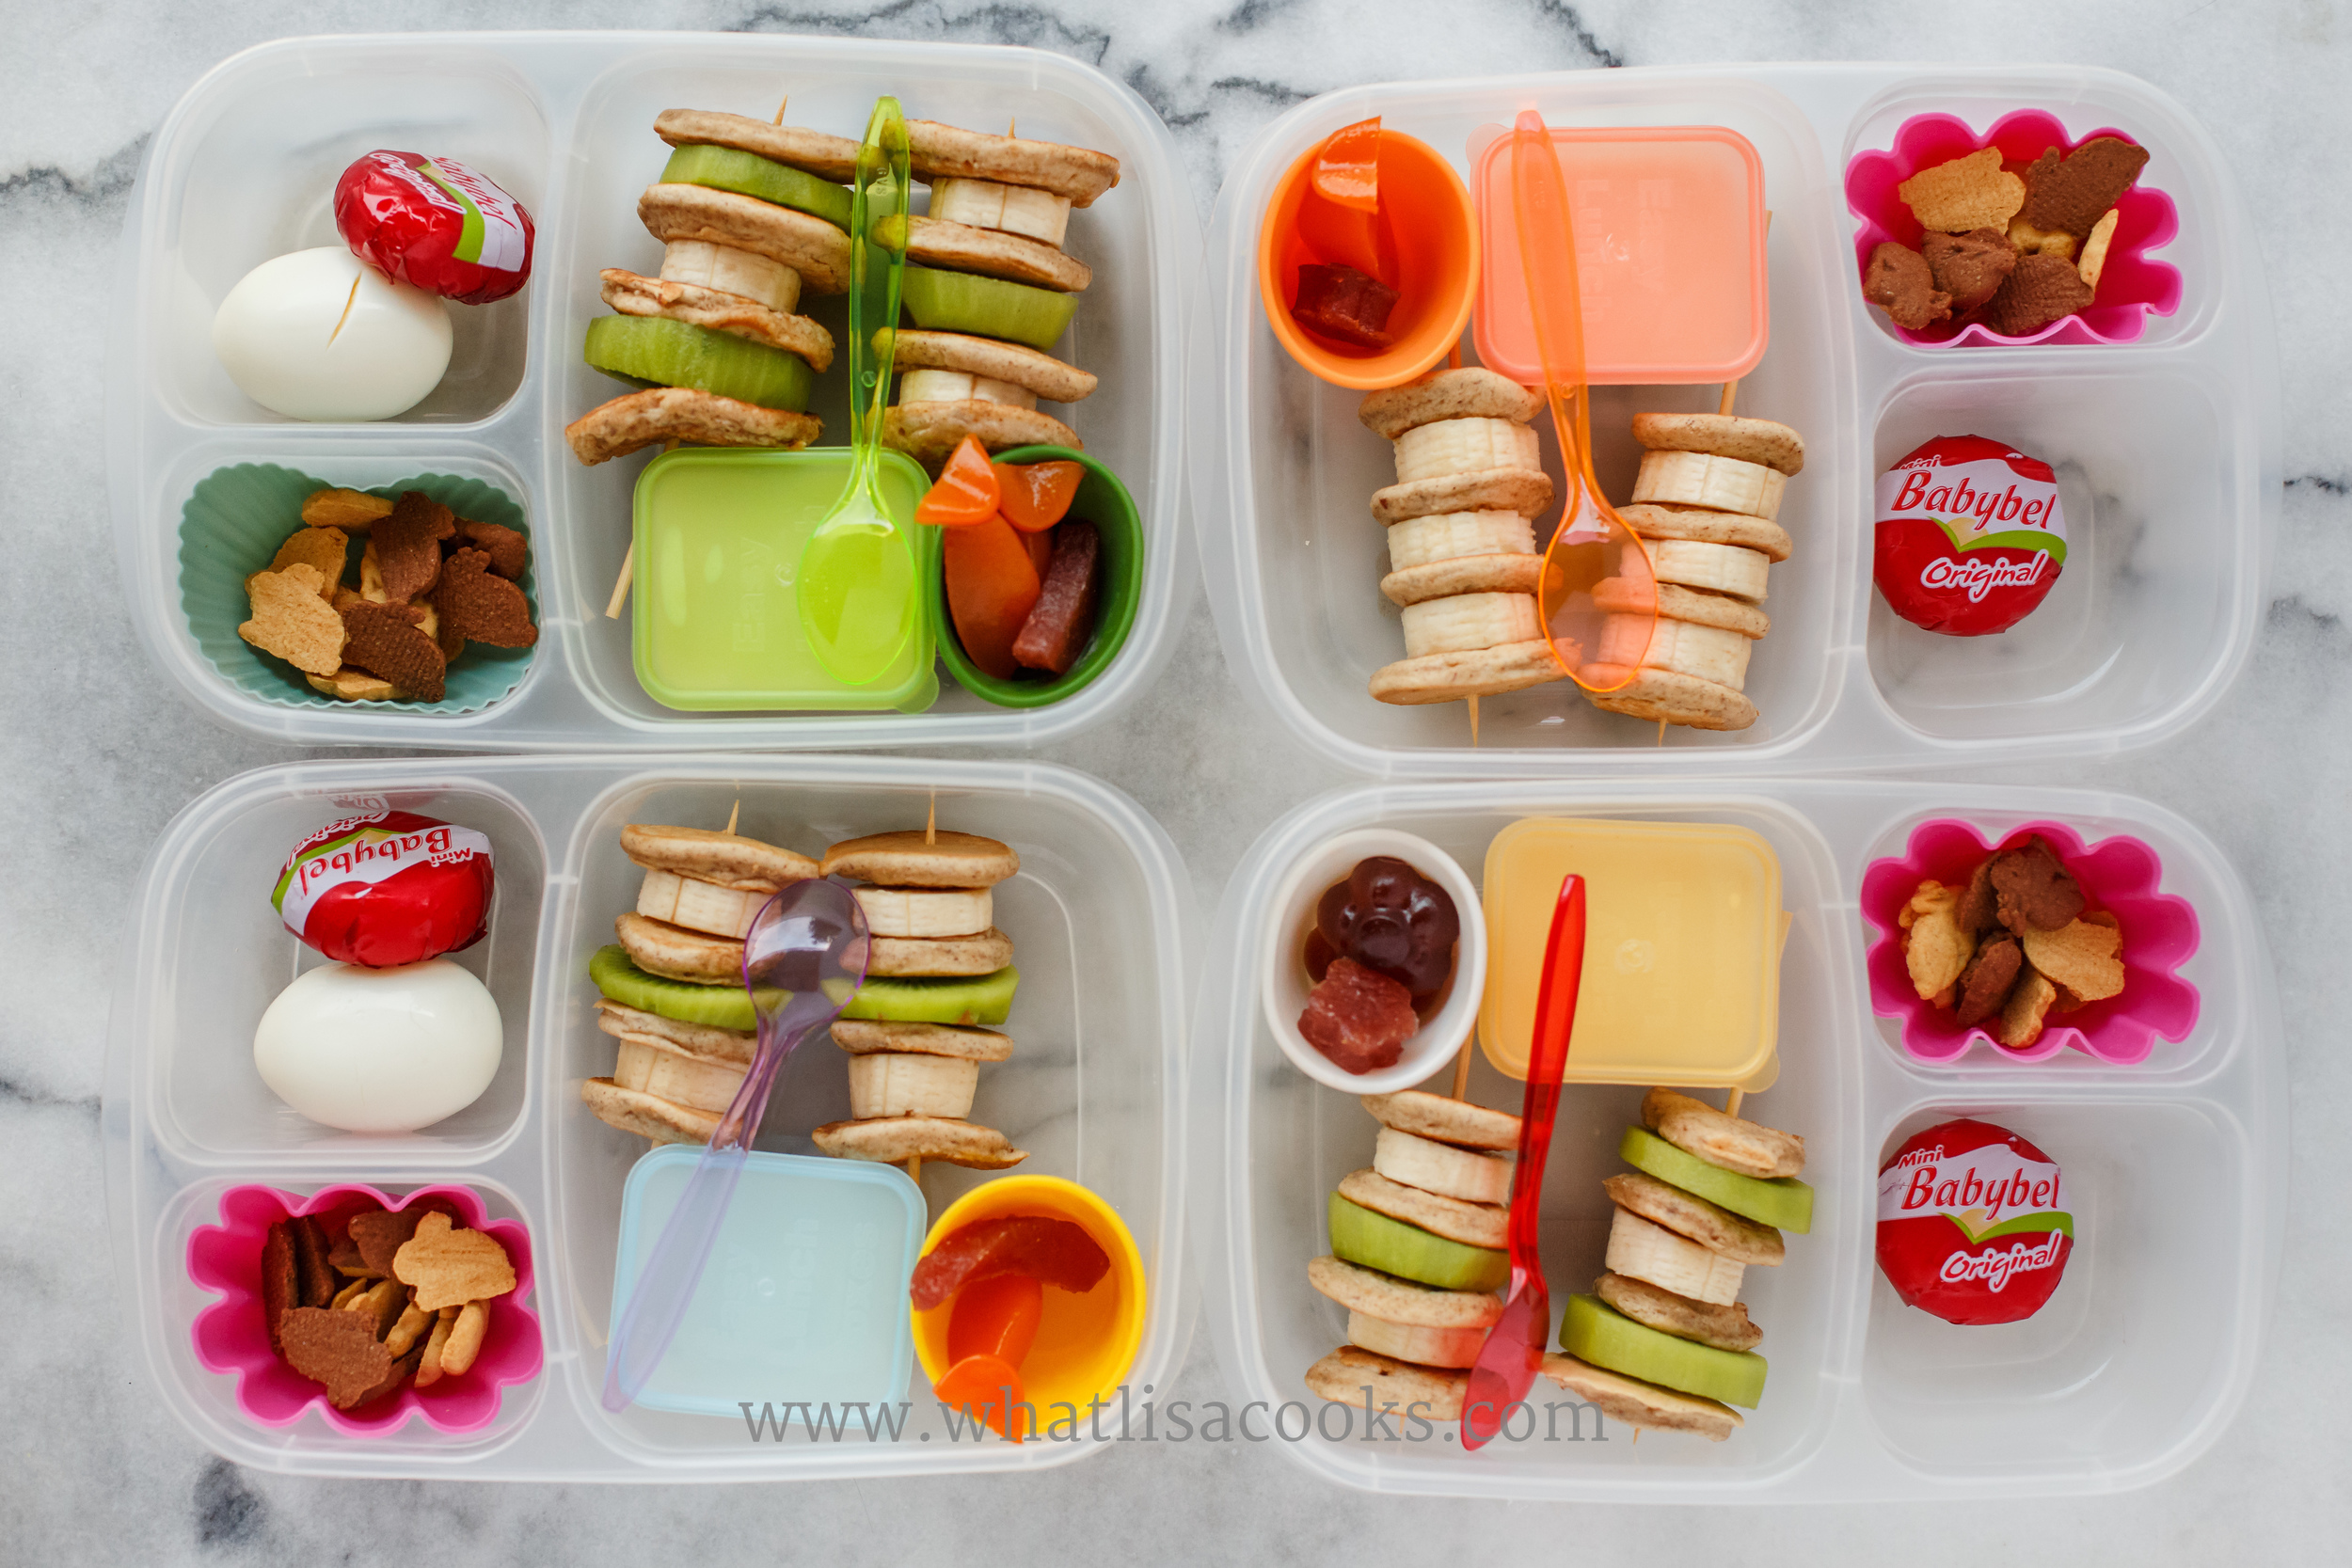 Breakfast for lunch: mini pancake kebobs with kiwi and banana, maple syrup yogurt for dipping, gummies, cheese, boiled egg, and a few bunny grahams.